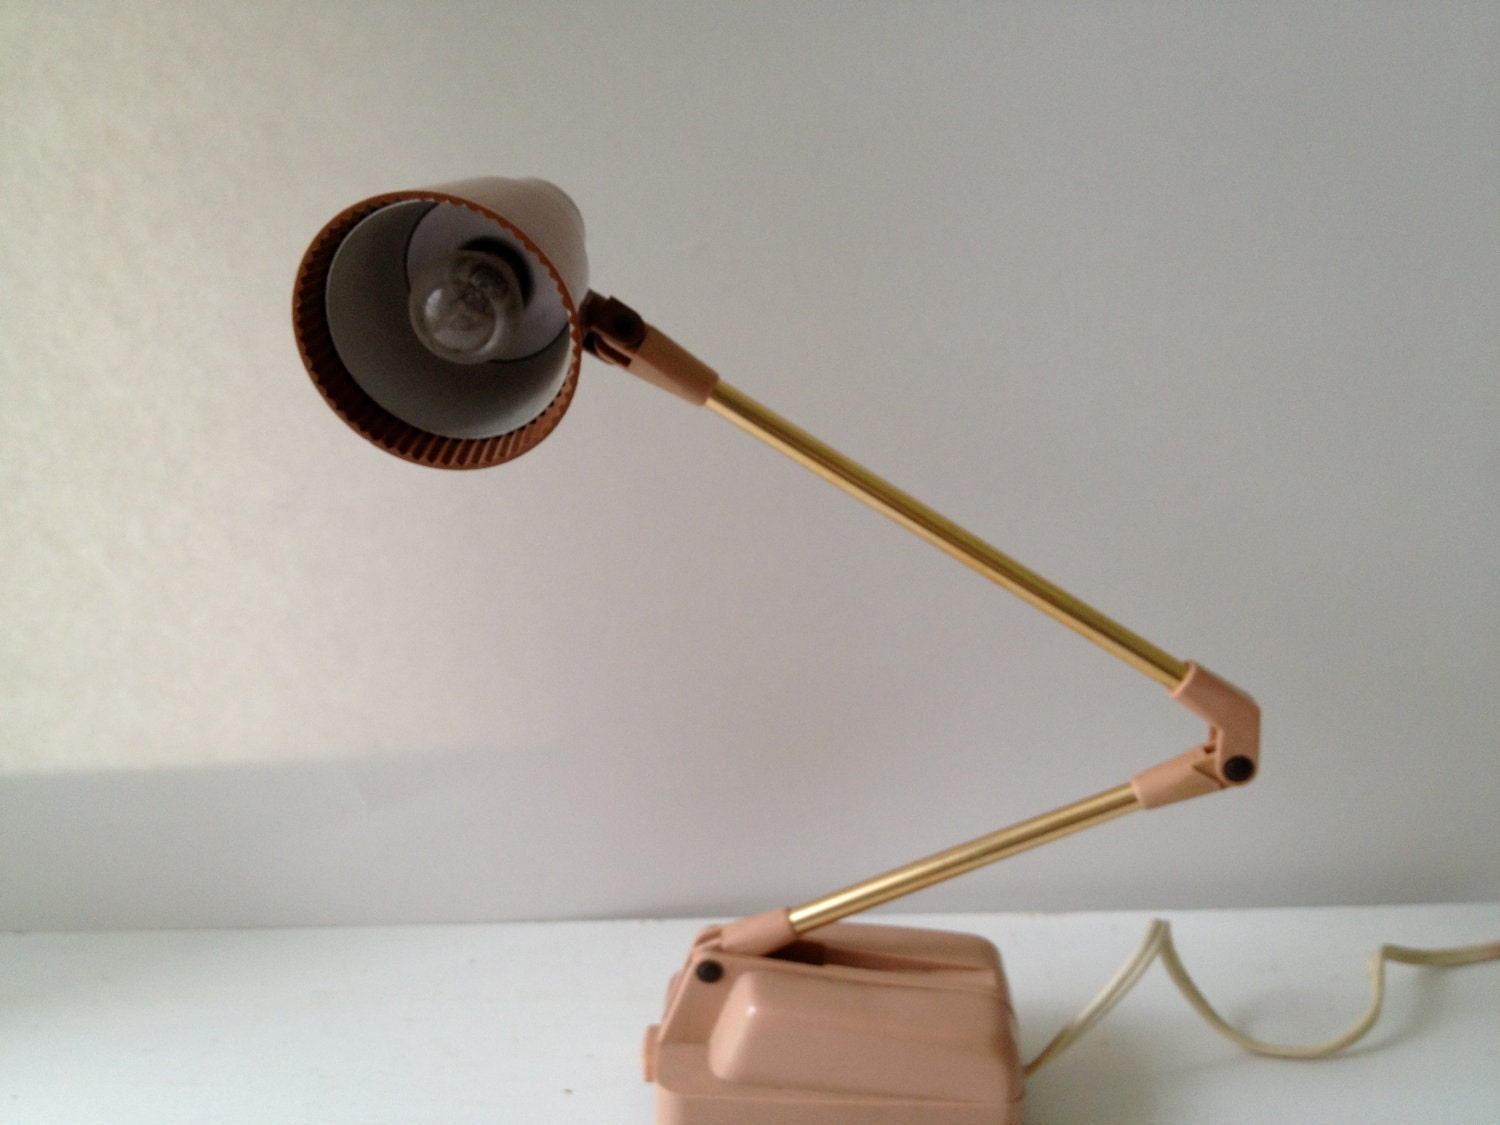 Vintage Gooseneck Desk Lamp - Rose Pink/Gold/Brown